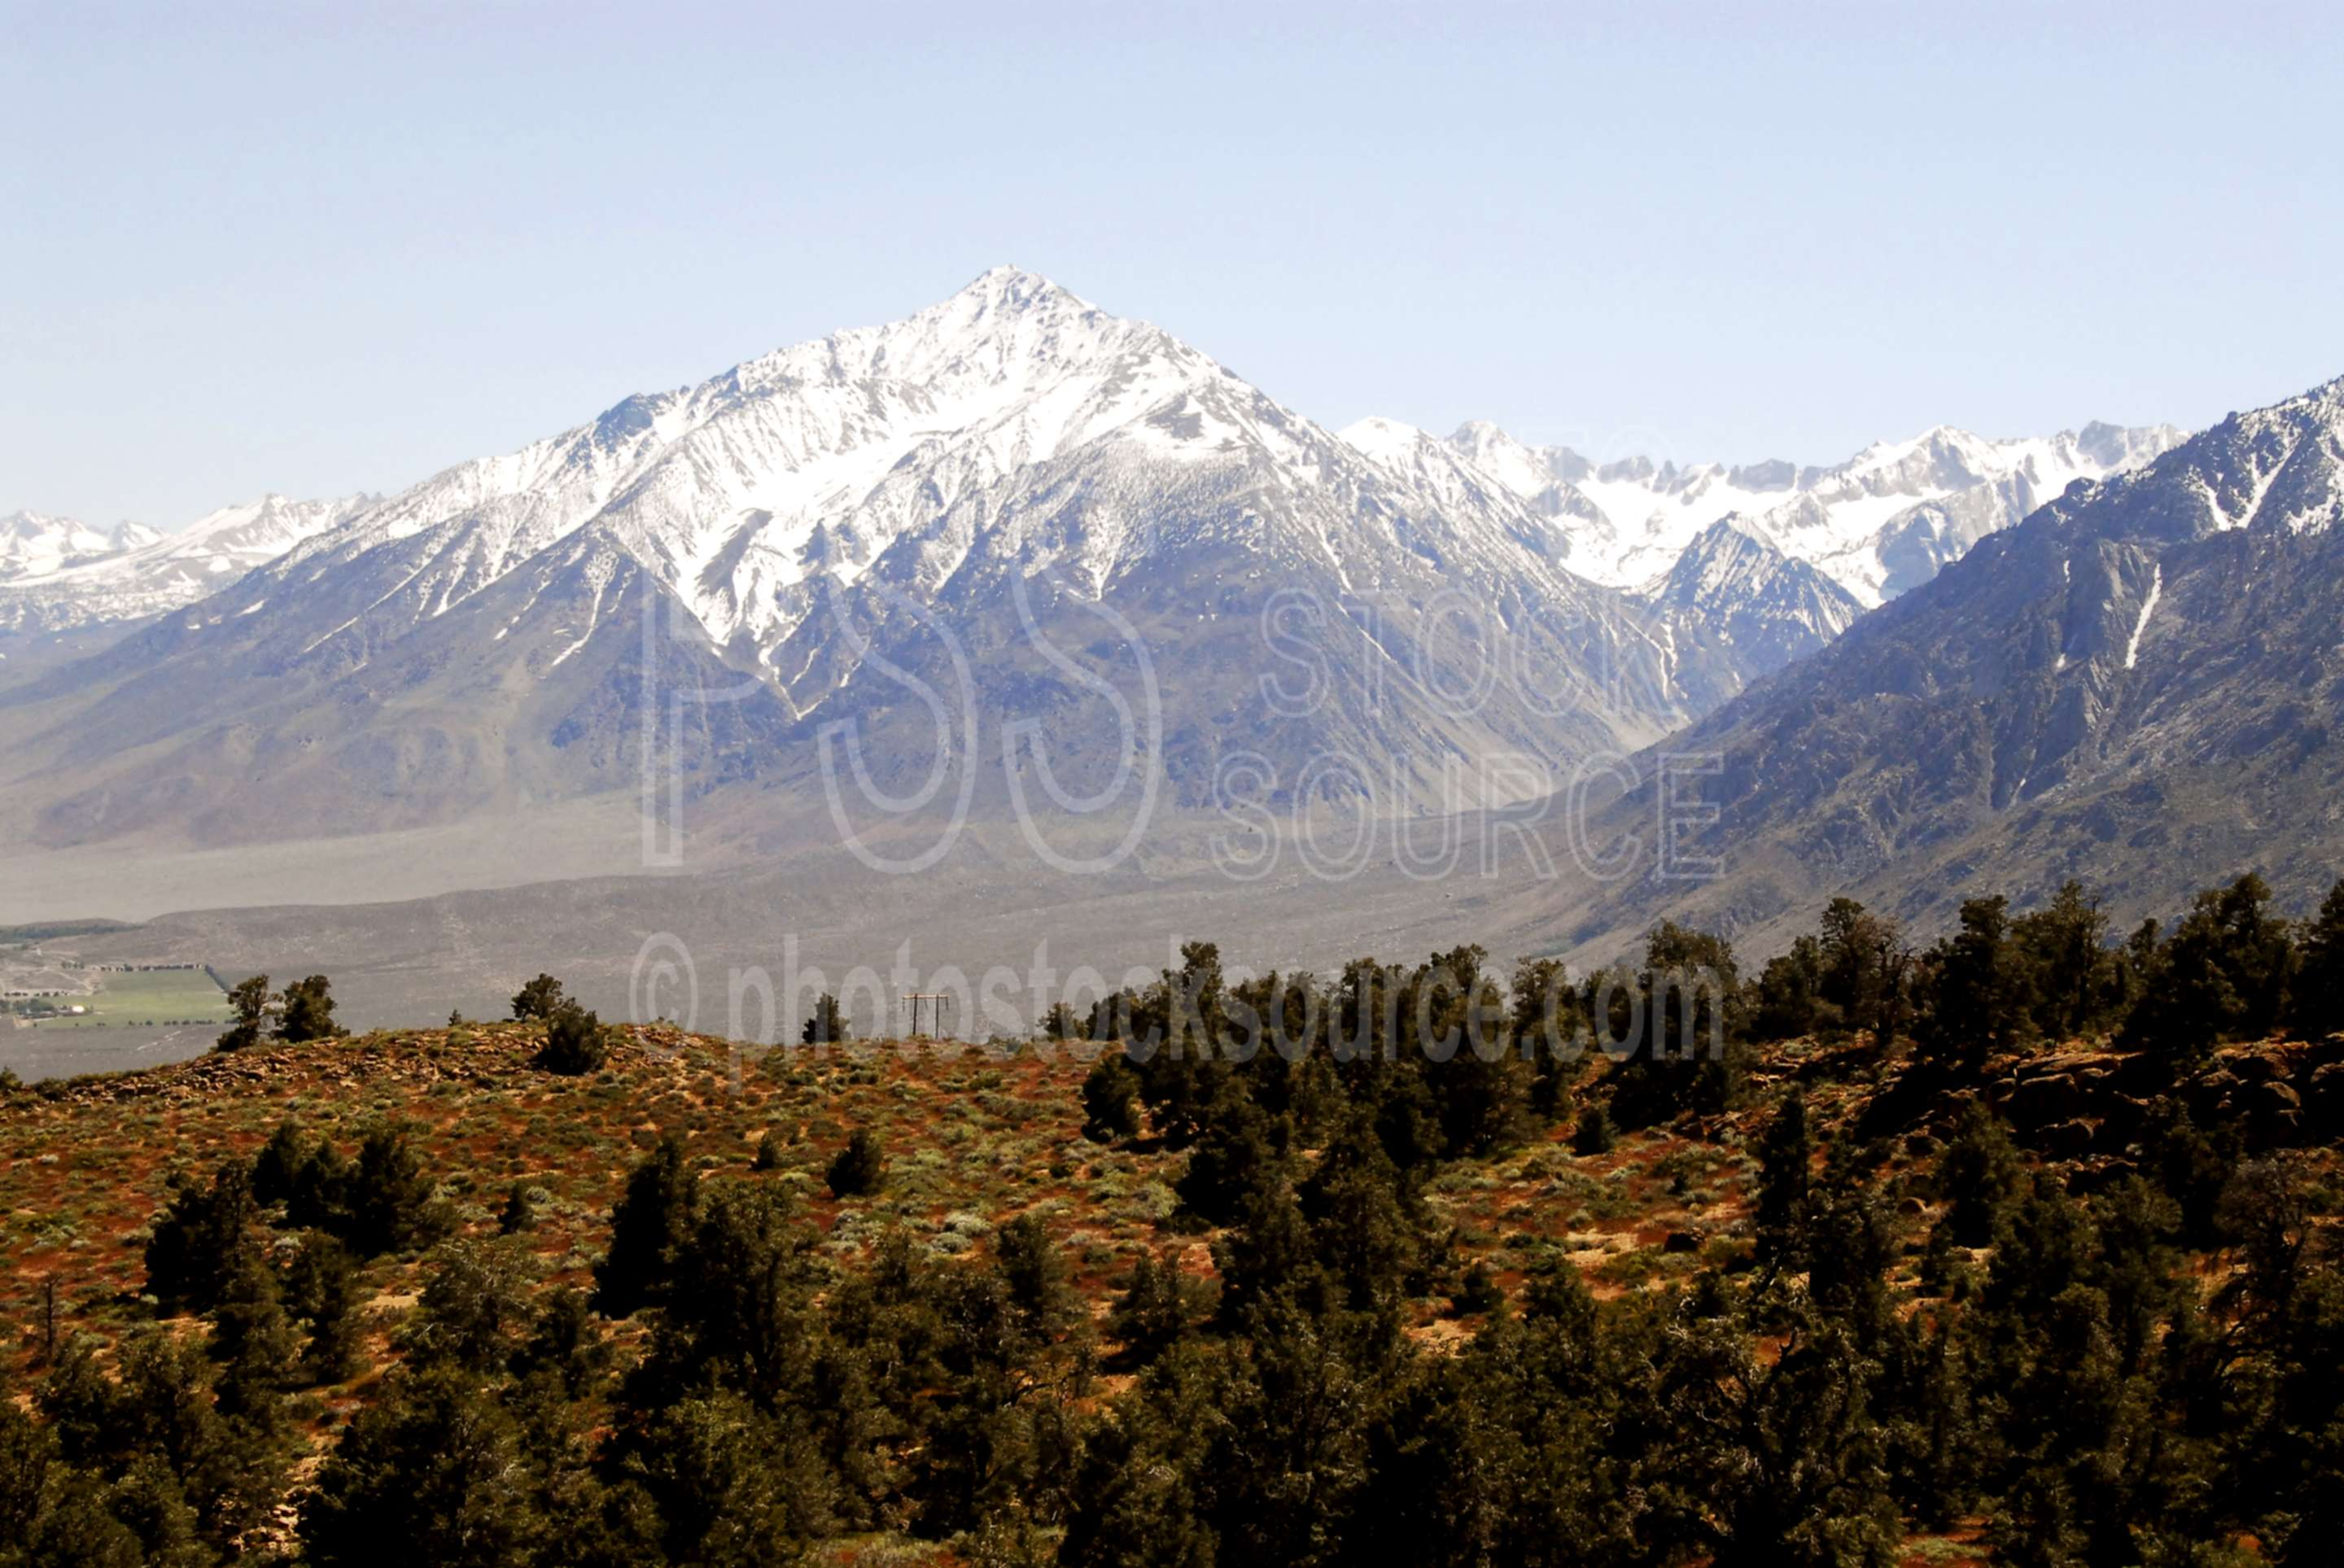 Mt Tom from Owens Valley,valley,mountains,owens valley,sierra nevada,mt. tom